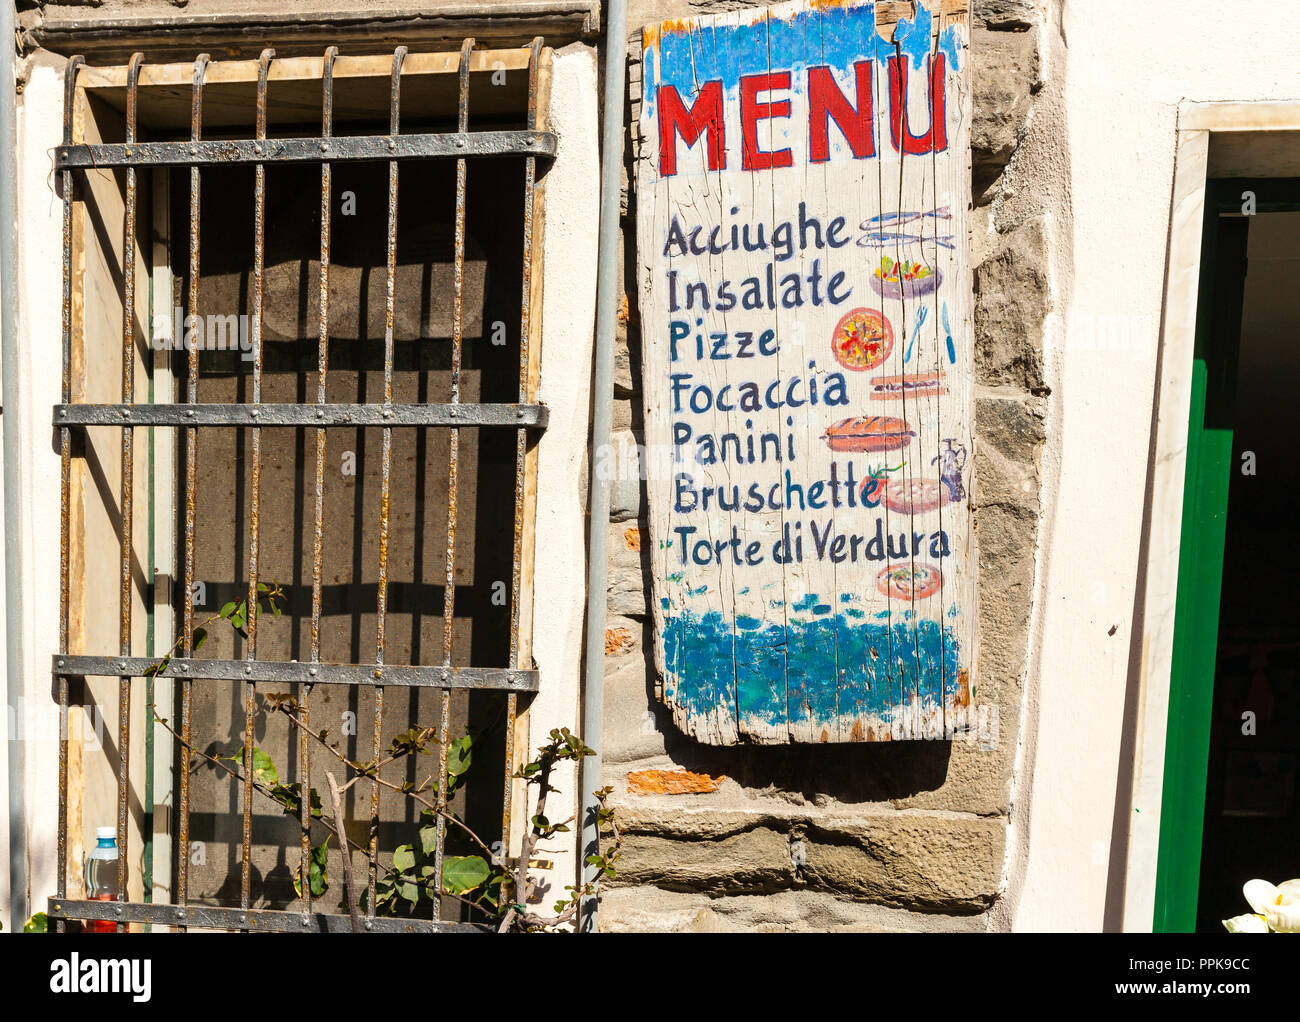 VERNAZZA, ITALY - APRIL 26 2011; Italian village typical pizzeria food shop signage  advertising different offerings with little pictures - Stock Image